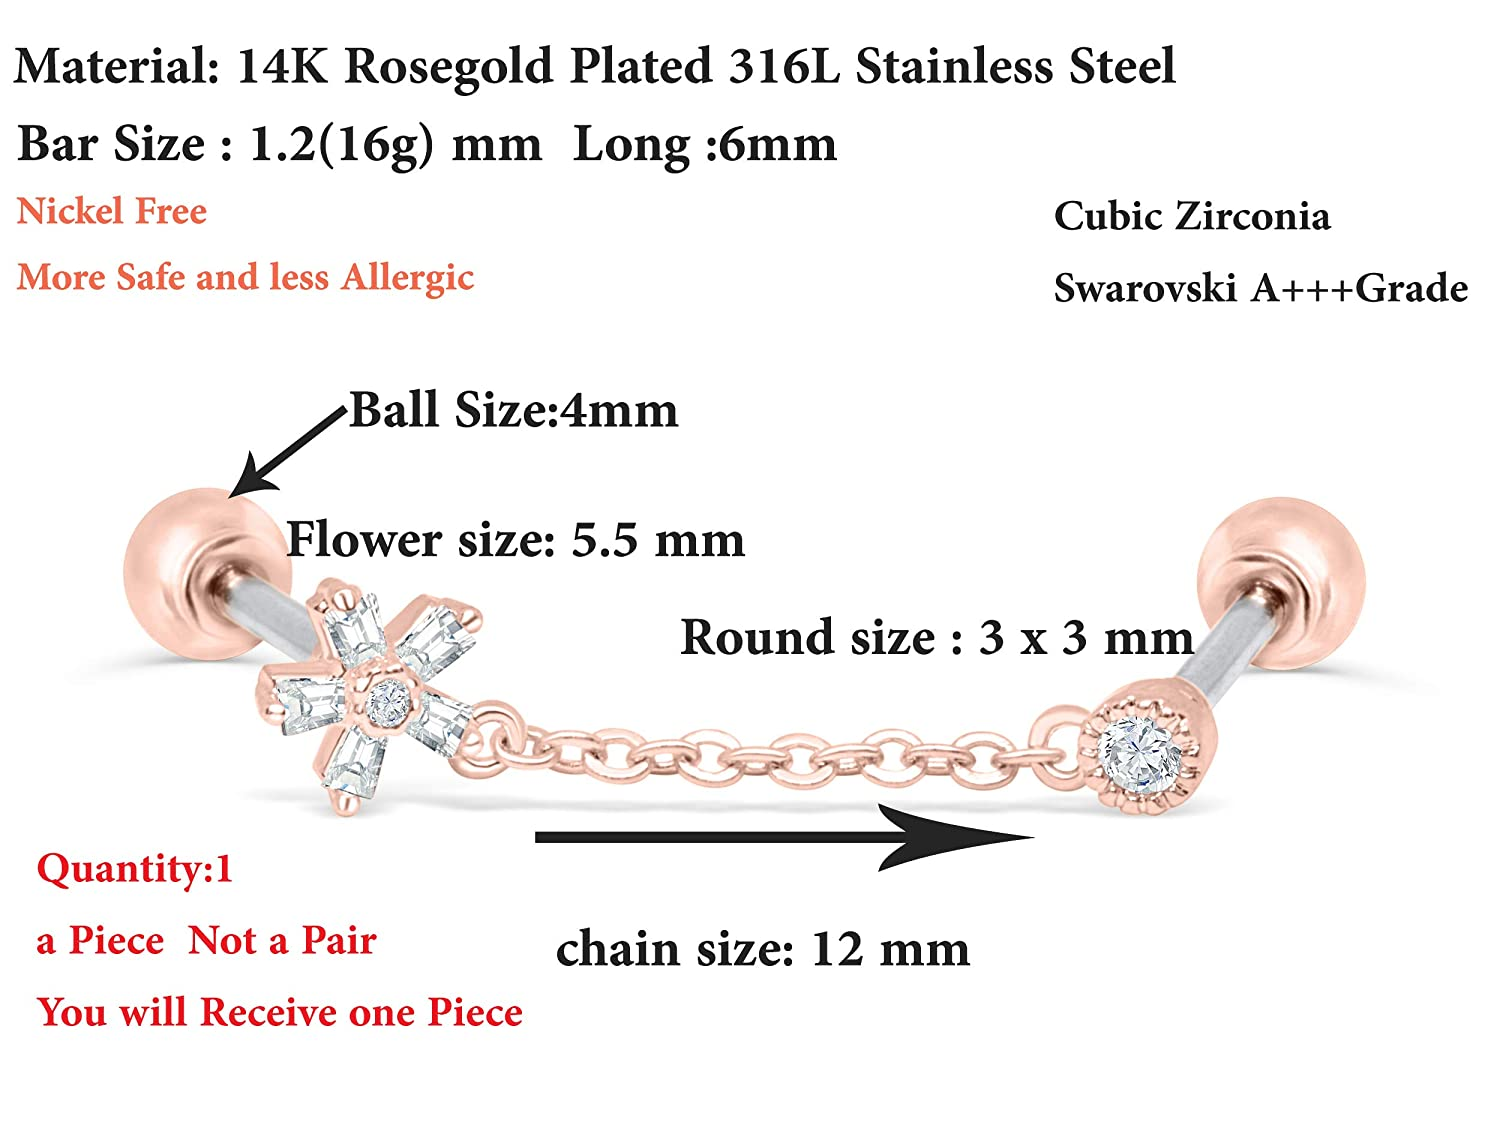 ONDAISY 14k Gold Plated Simulated Diamond Round Cz Snowflake Flower Ear Barbell Ball Stud Earring Chain Piercing